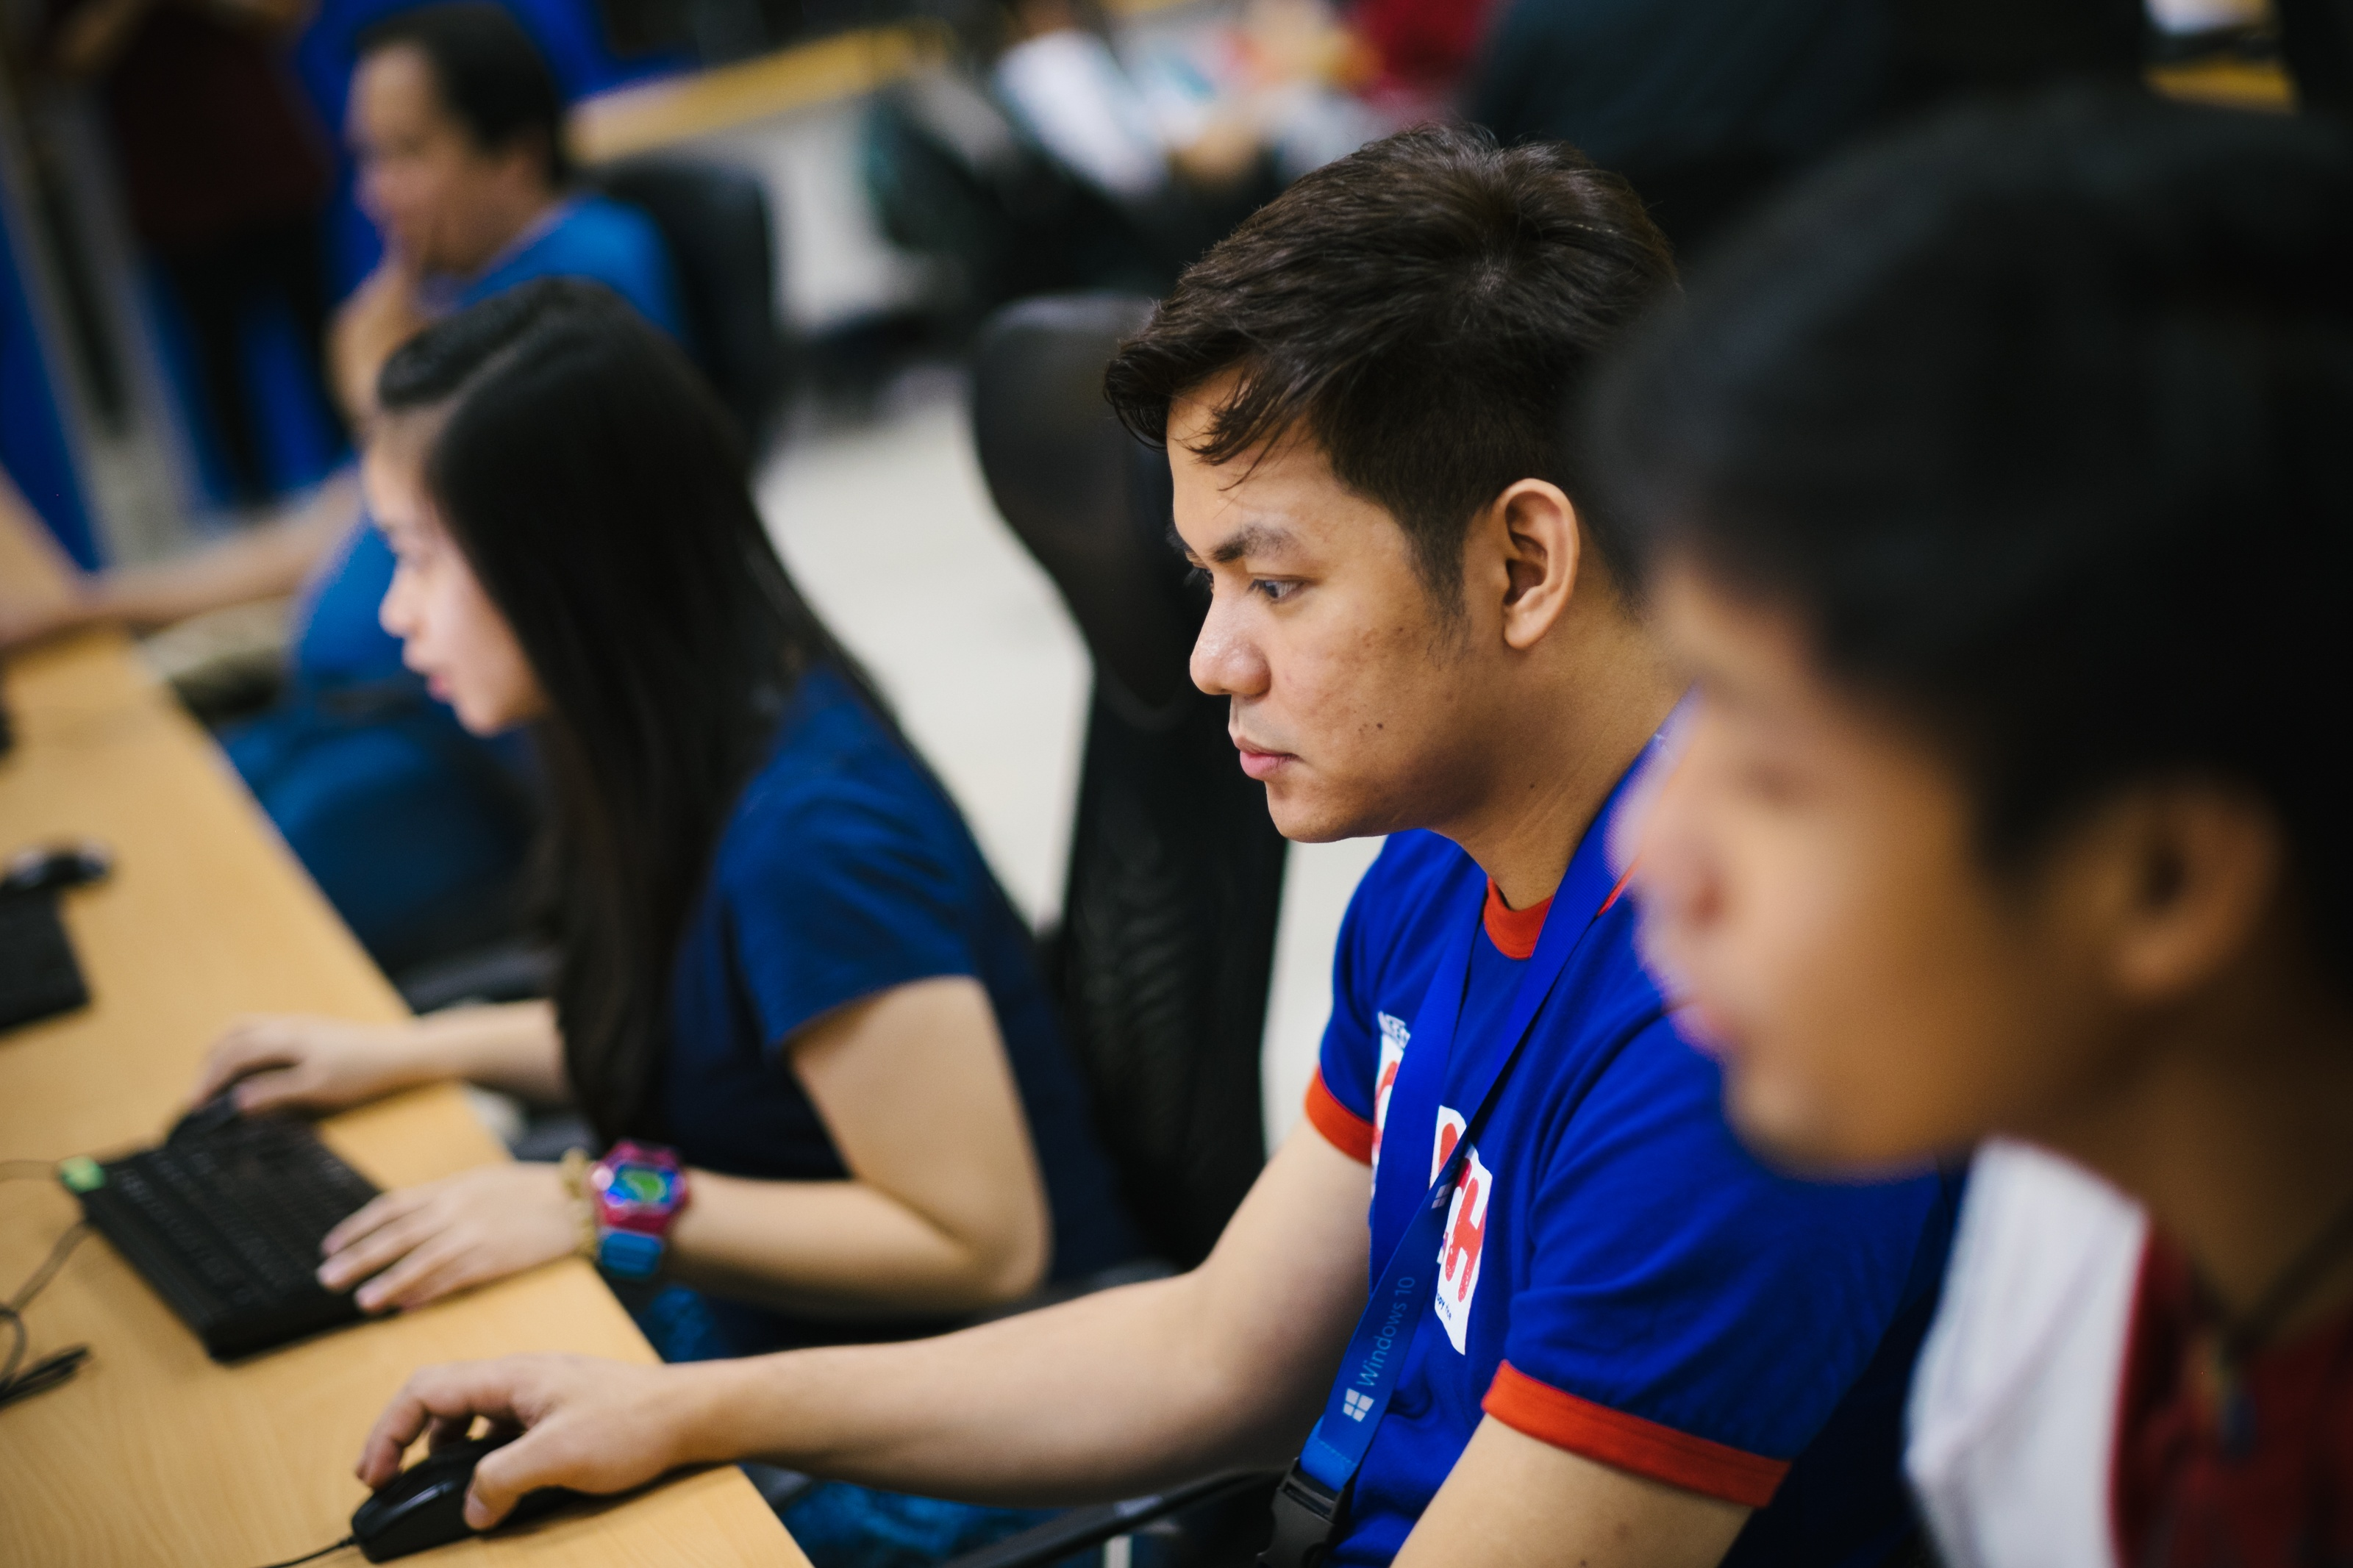 Help Desk Support Services Moving to the Philippines